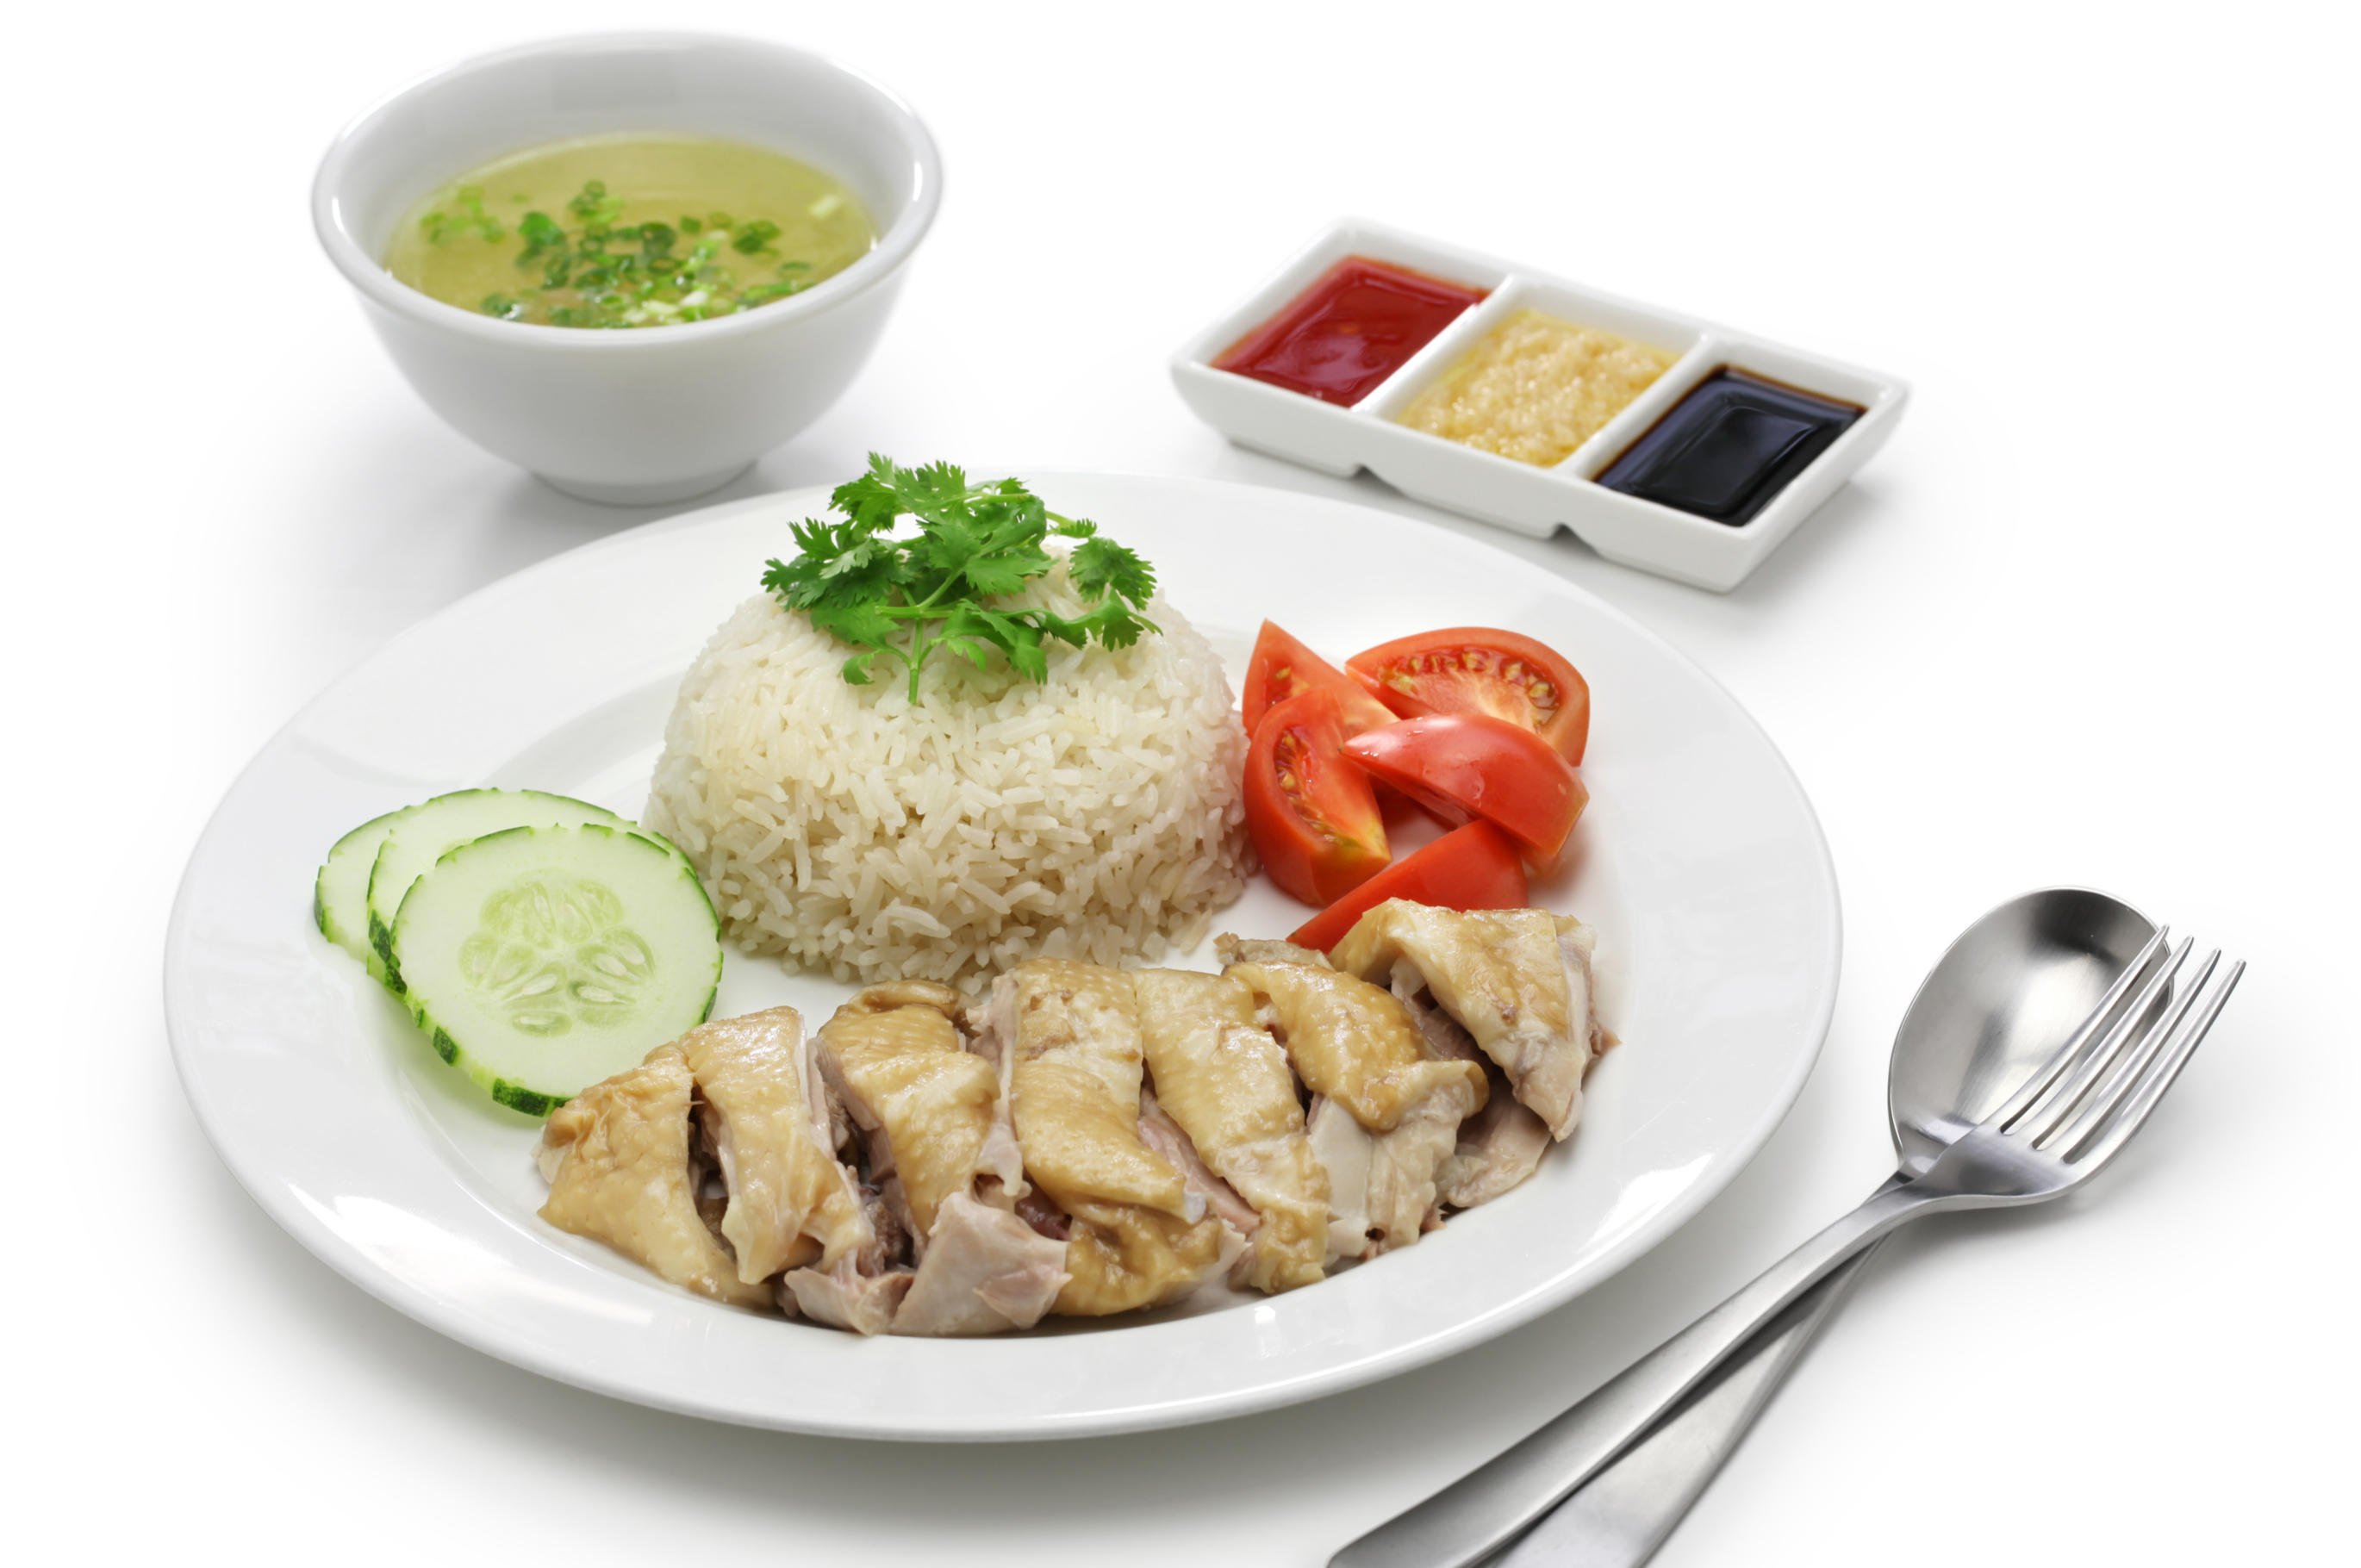 http://vismark.com.sg/wp-content/uploads/2019/05/Website-Chicken-Rice-1.jpg